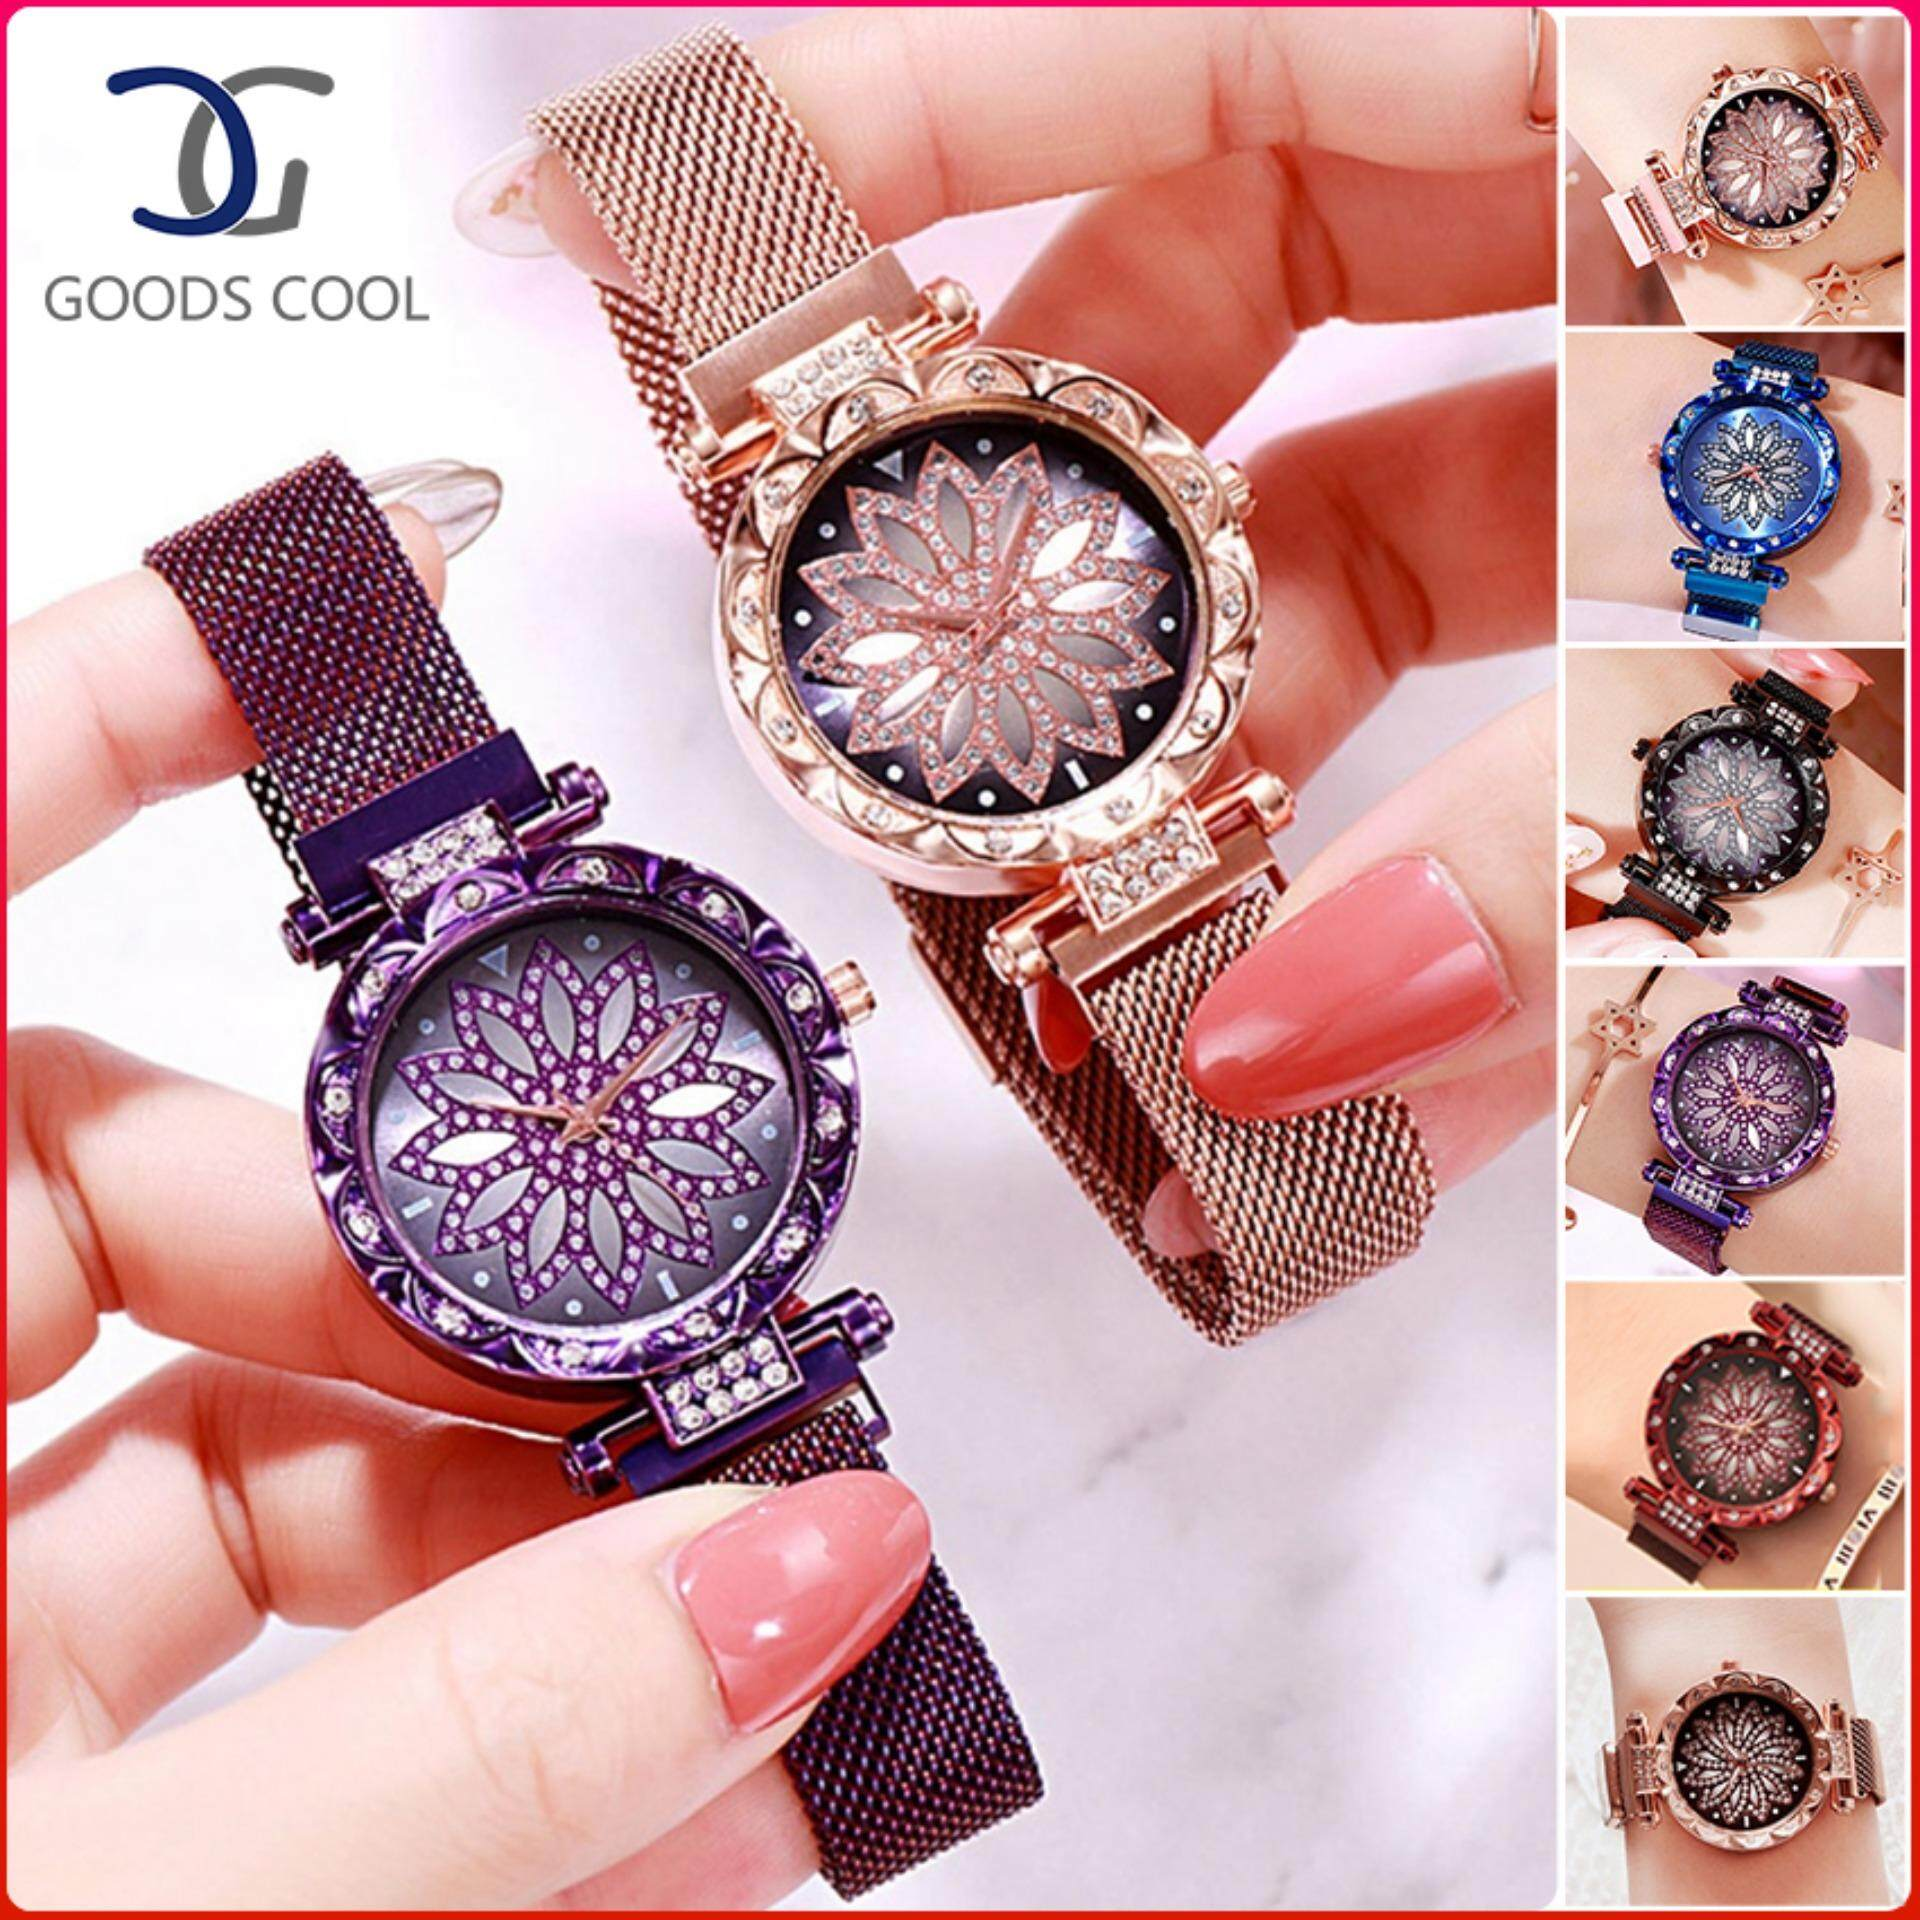 GoodScool Starry Flower Diamond Quartz Watch for Women,Fashion Casual Ladies Watch Stainless Steel Women Watch with Magnet Milan Mesh Belt&Magnet Strap Buckle Malaysia